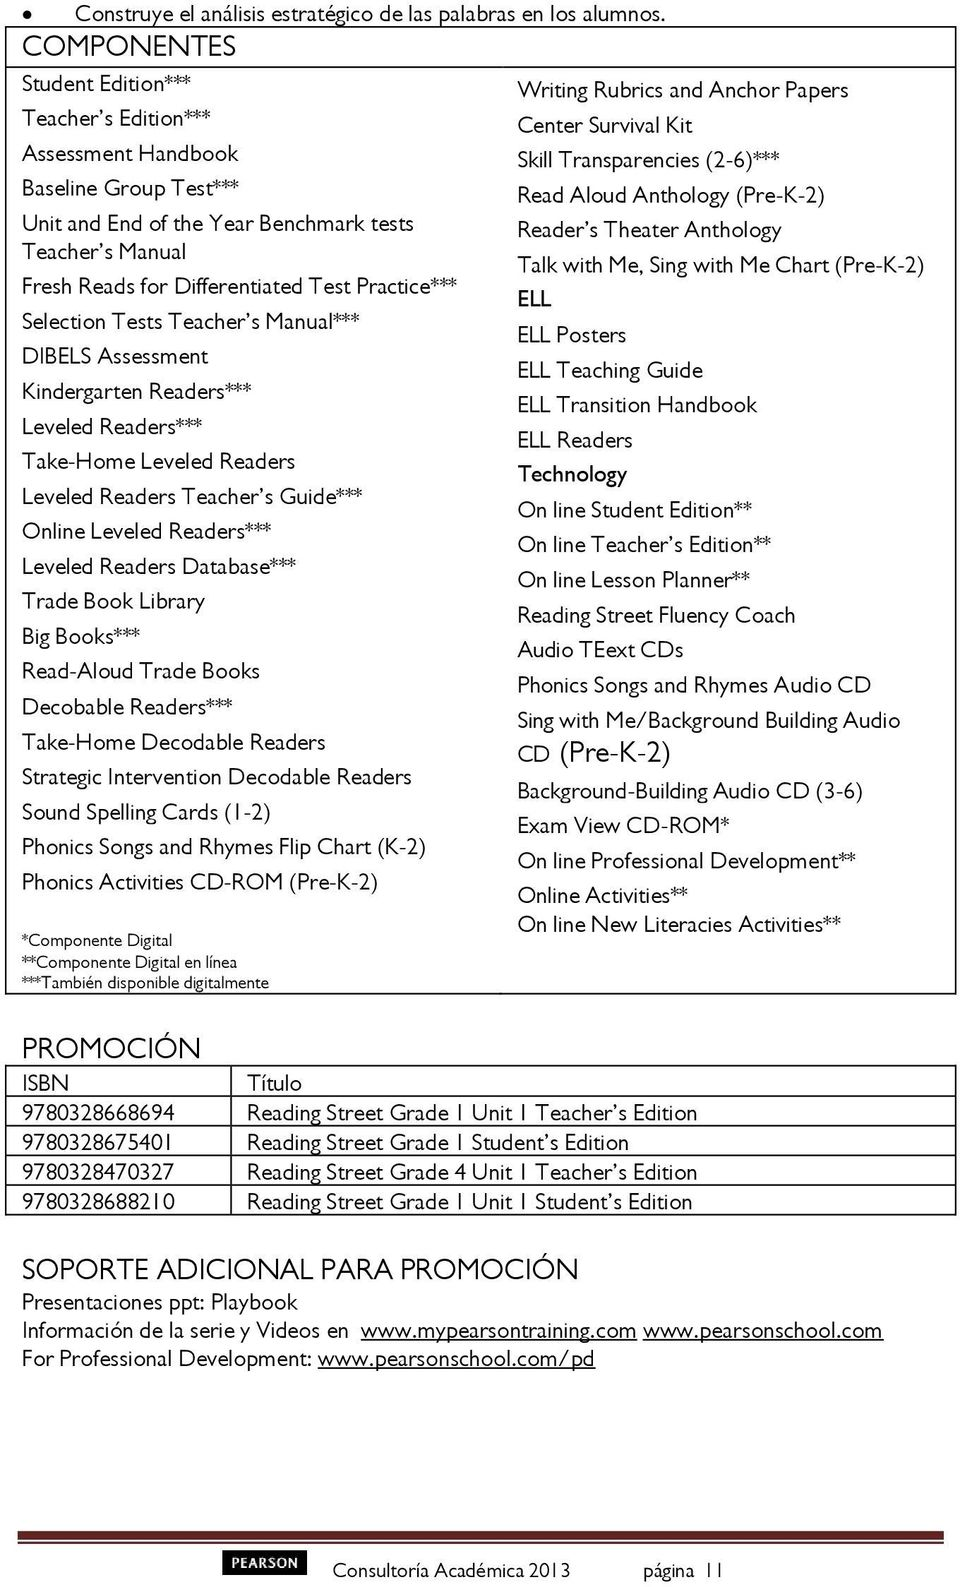 (Pre-K-2) Unit and End of the Year Benchmark tests Reader s Theater Anthology Teacher s Manual Talk with Me, Sing with Me Chart (Pre-K-2) Fresh Reads for Differentiated Test Practice*** ELL Selection